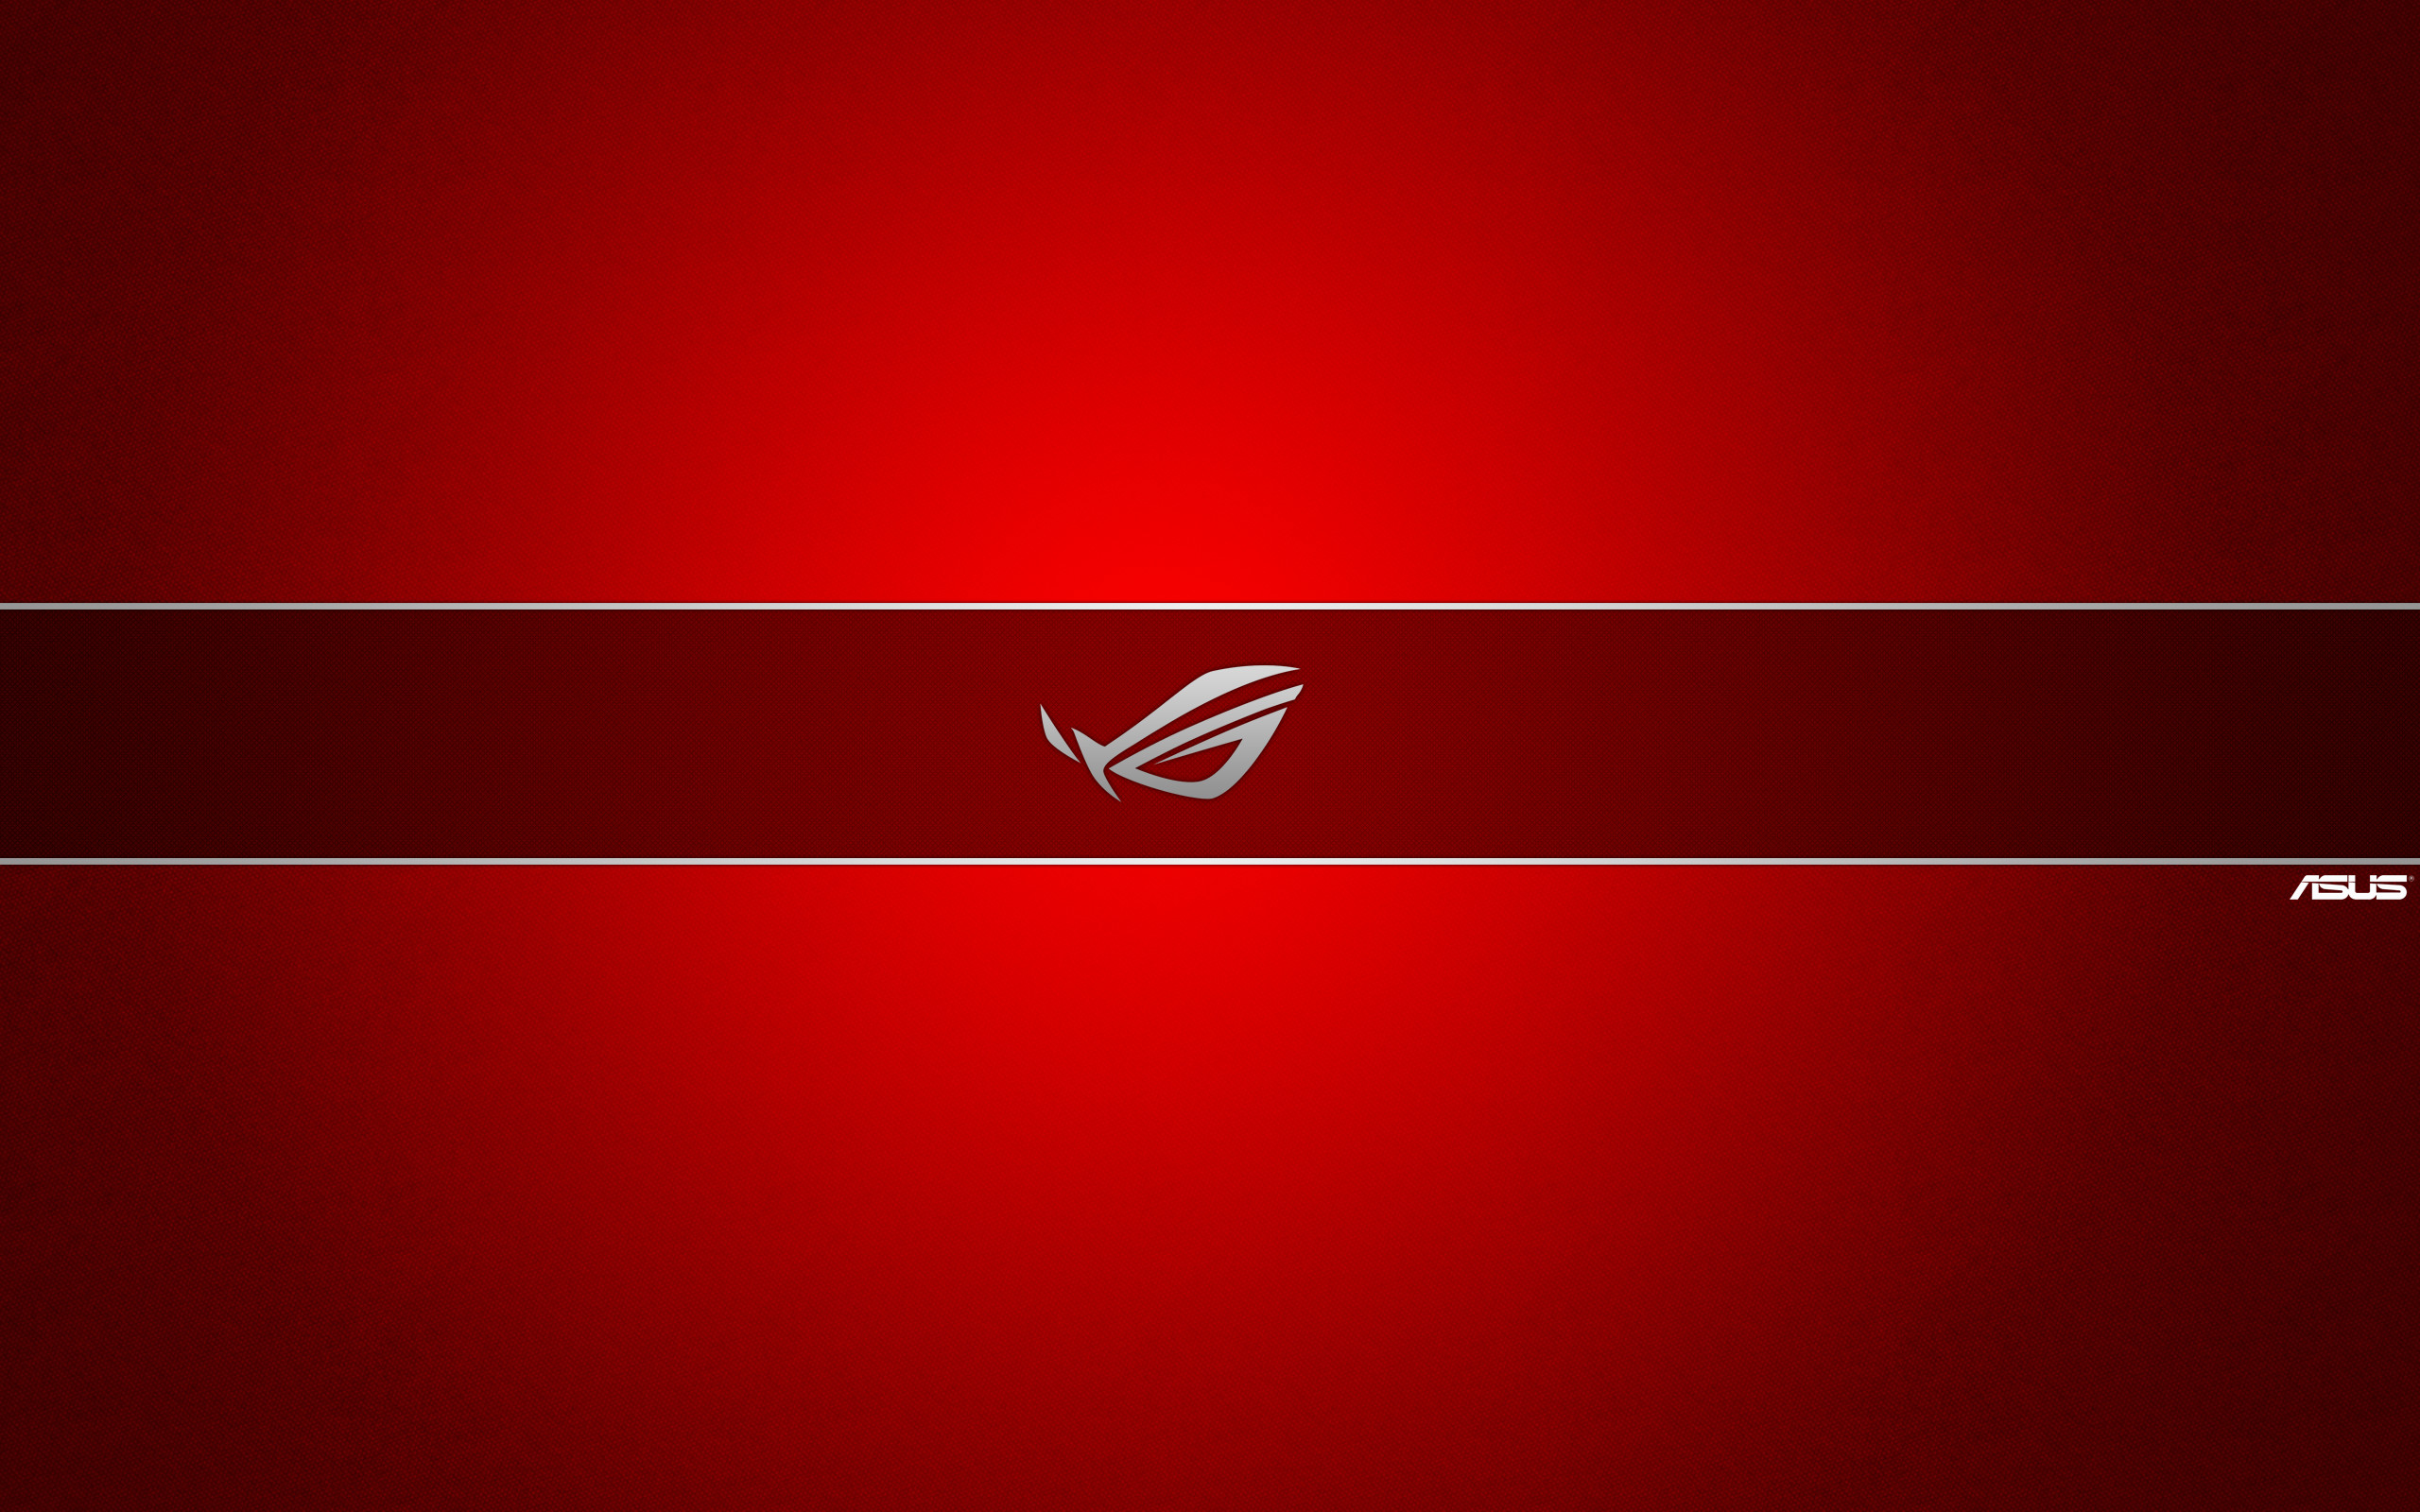 Asus rog wallpaper 1920x1080 89 images - Asus x series wallpaper hd ...